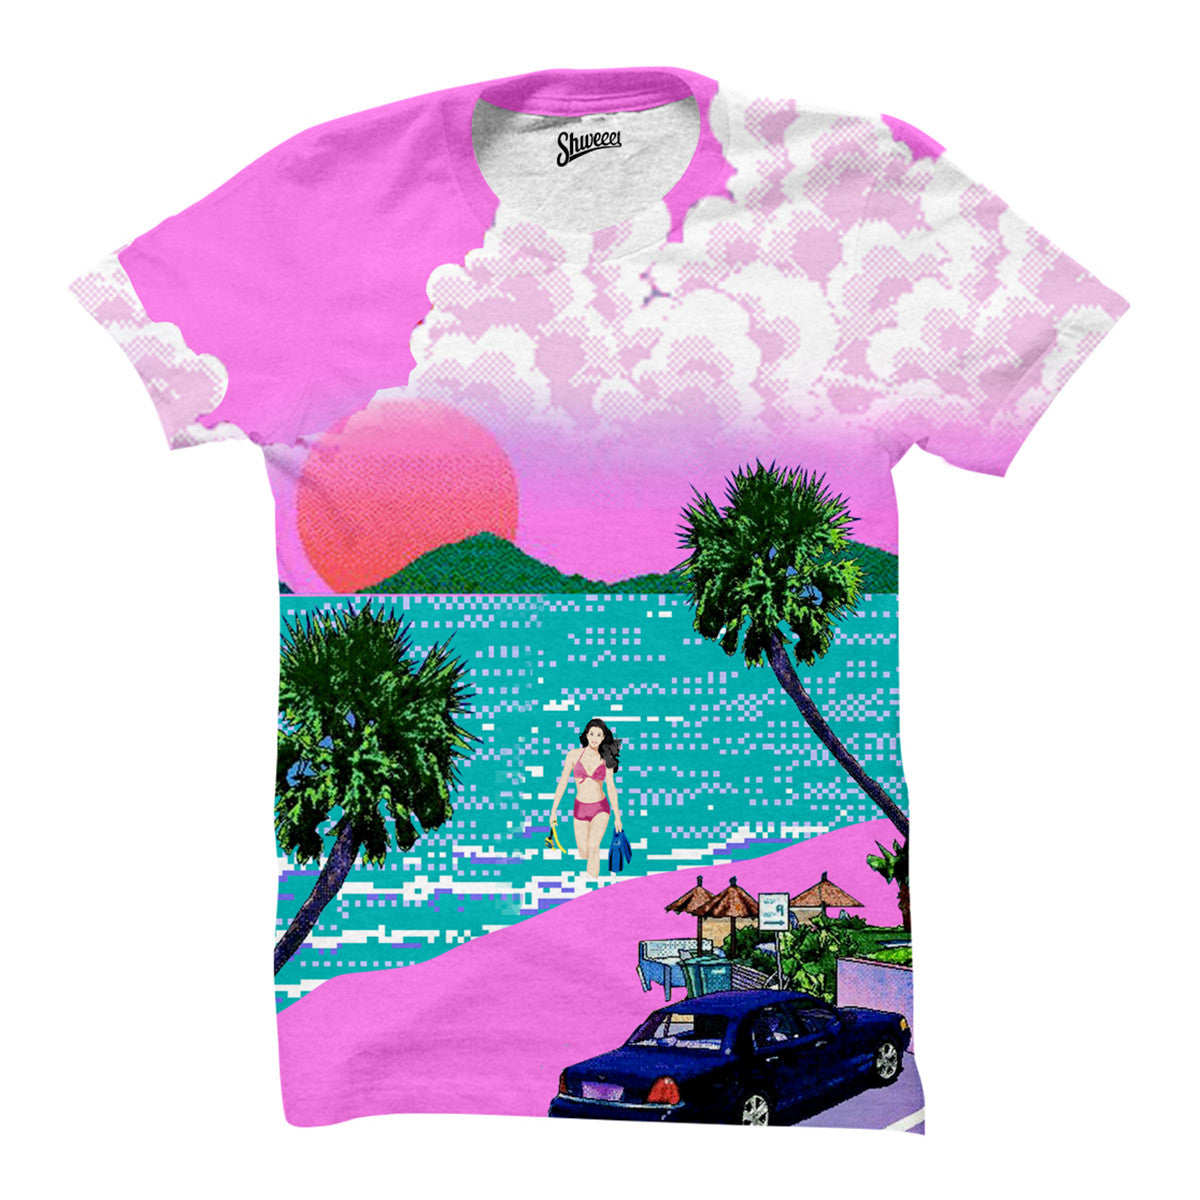 Beach Dreams Shirt - Shweeet